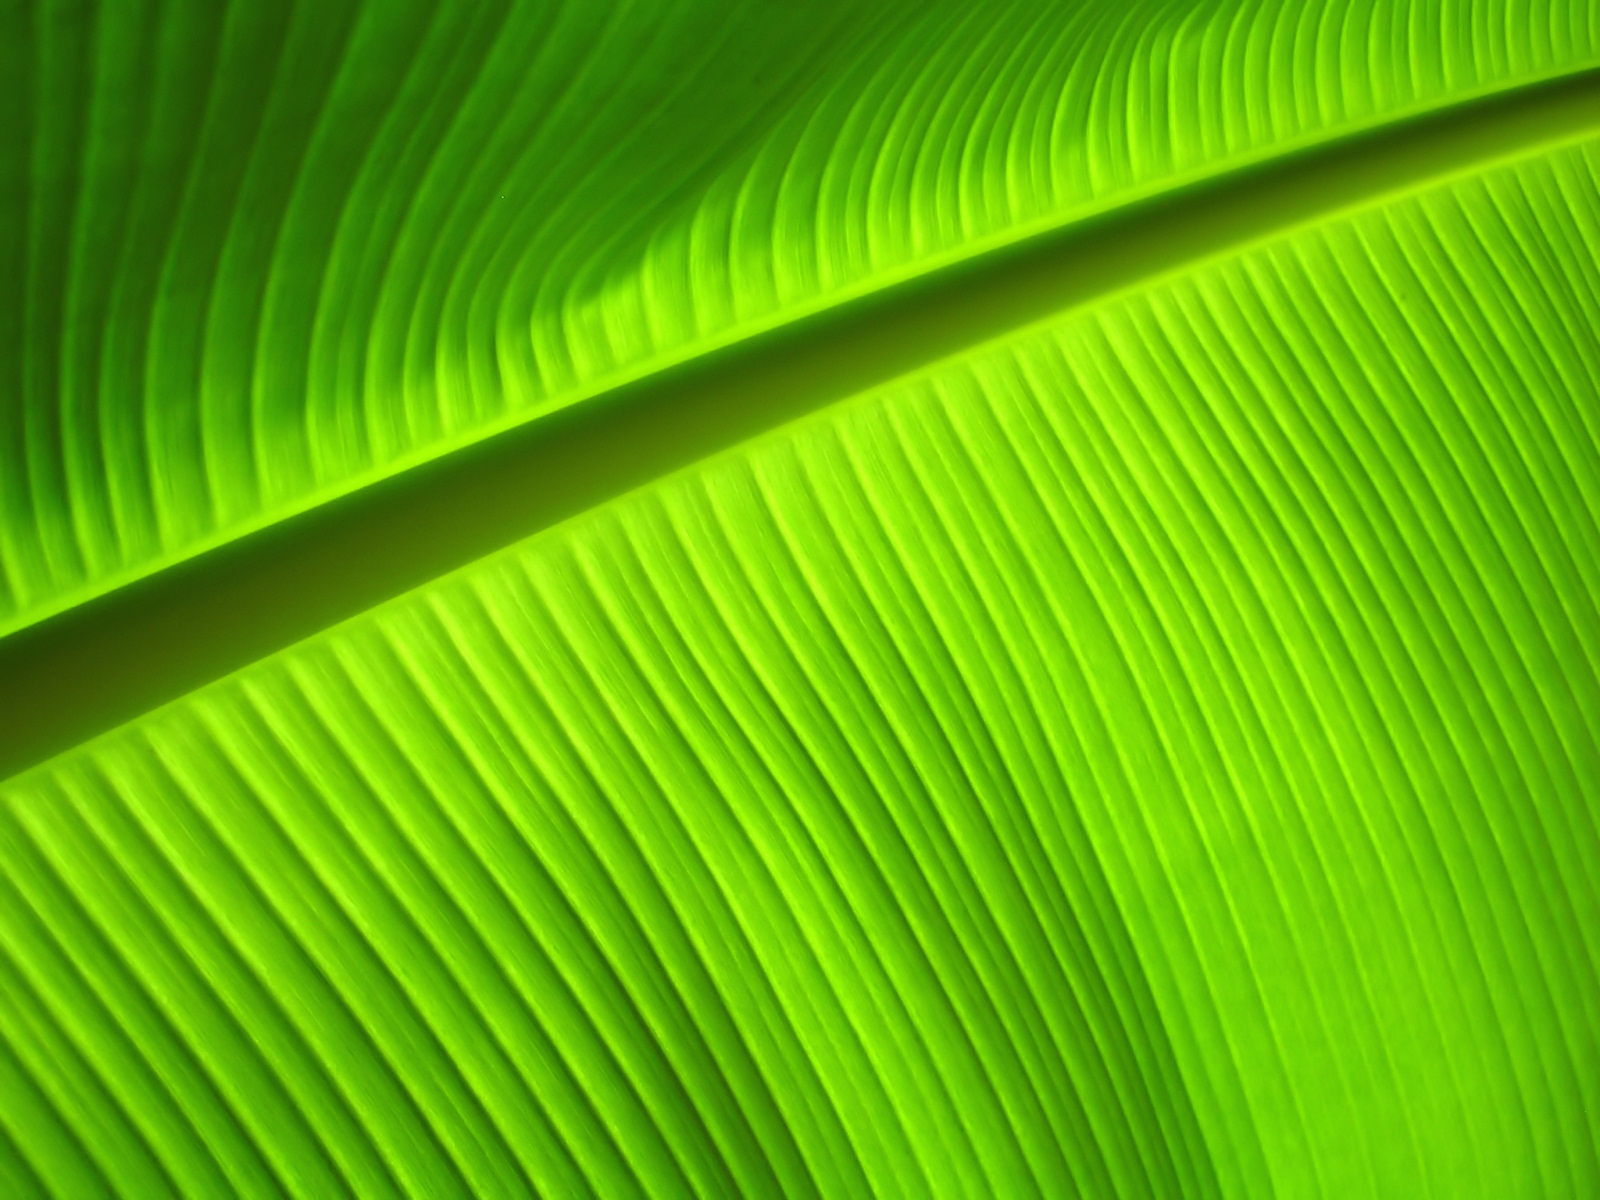 Related wallpapers nature plant banana leaf close up 1600x1200